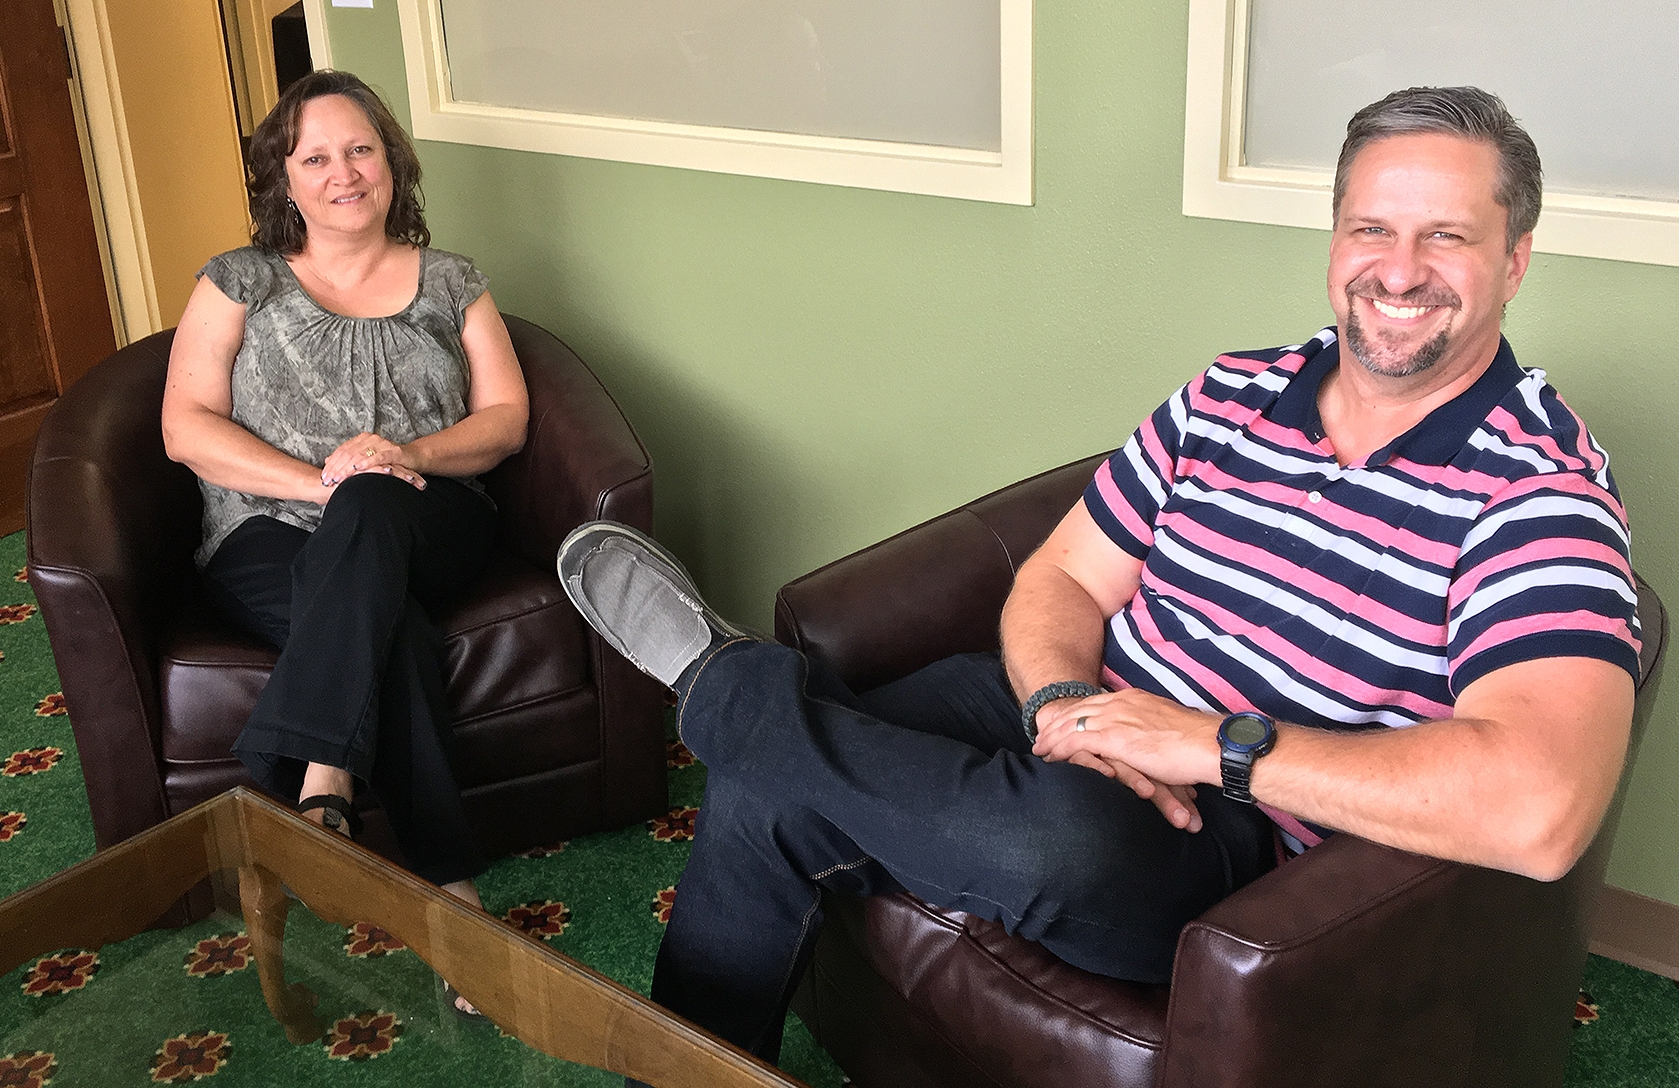 Regis University's Andi Houdek, left, and Josh Kreimeyer sit in a counseling room at the Mt. Carmel Center for Excellence; Regis and Mt. Carmel have partnered together to provide counseling to veterans. (Photo by Regis University)